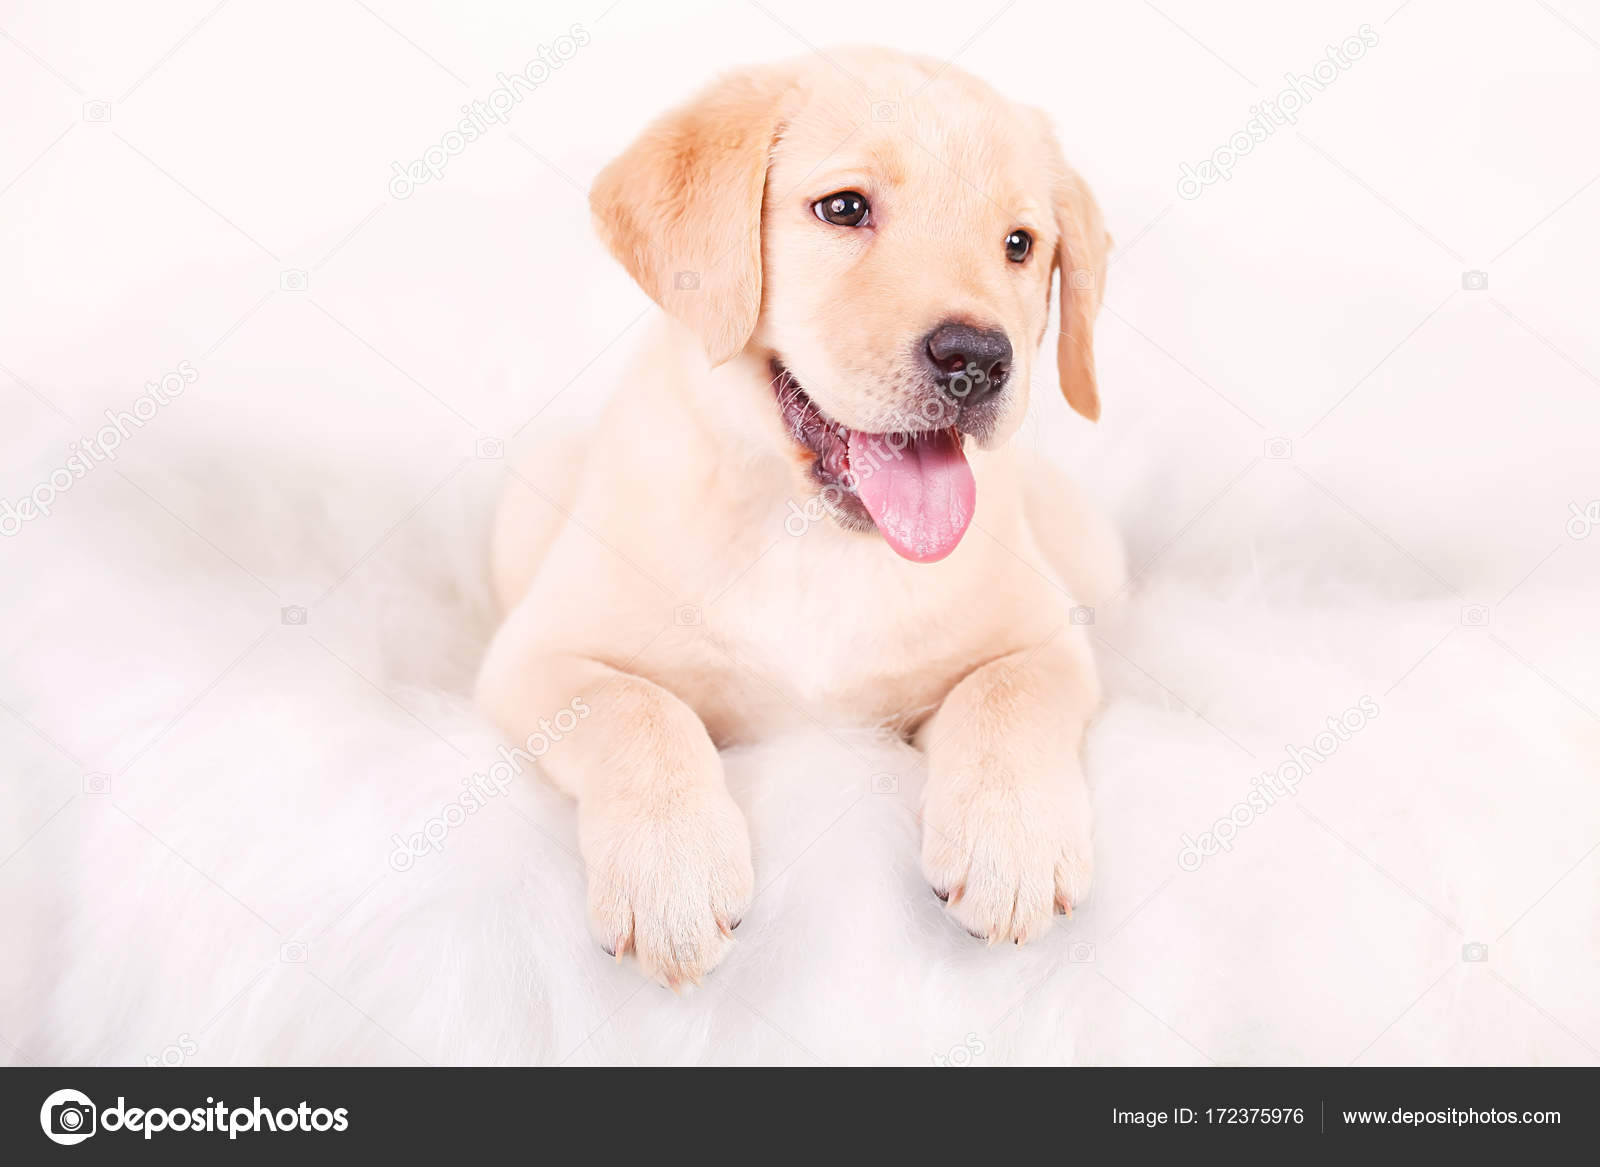 Labrador Puppy Drawing Drawing Dog Puppy Labrador Portrait On A White Background Stock Photo C Maksymiv 172375976